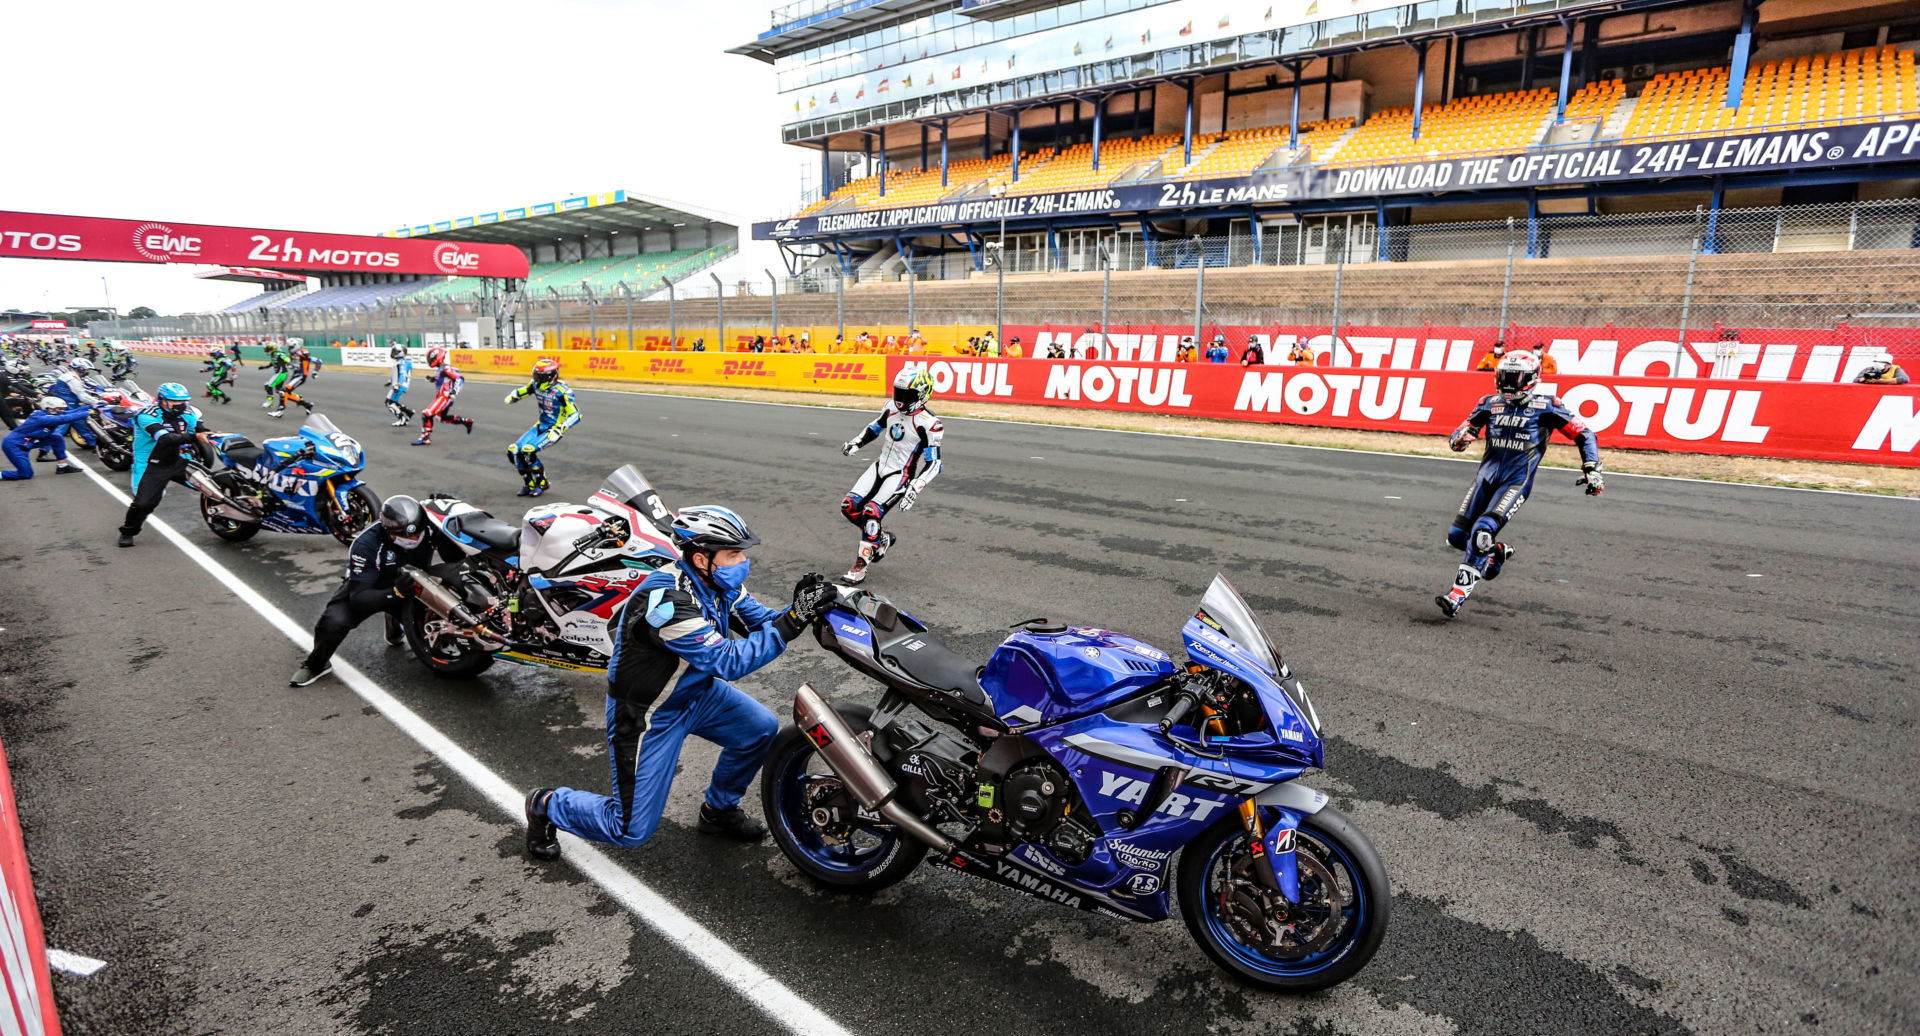 The start of the 24-Hours of Le Mans with no spectators in the grandstands in 2020. Photo courtesy Eurosport Events.